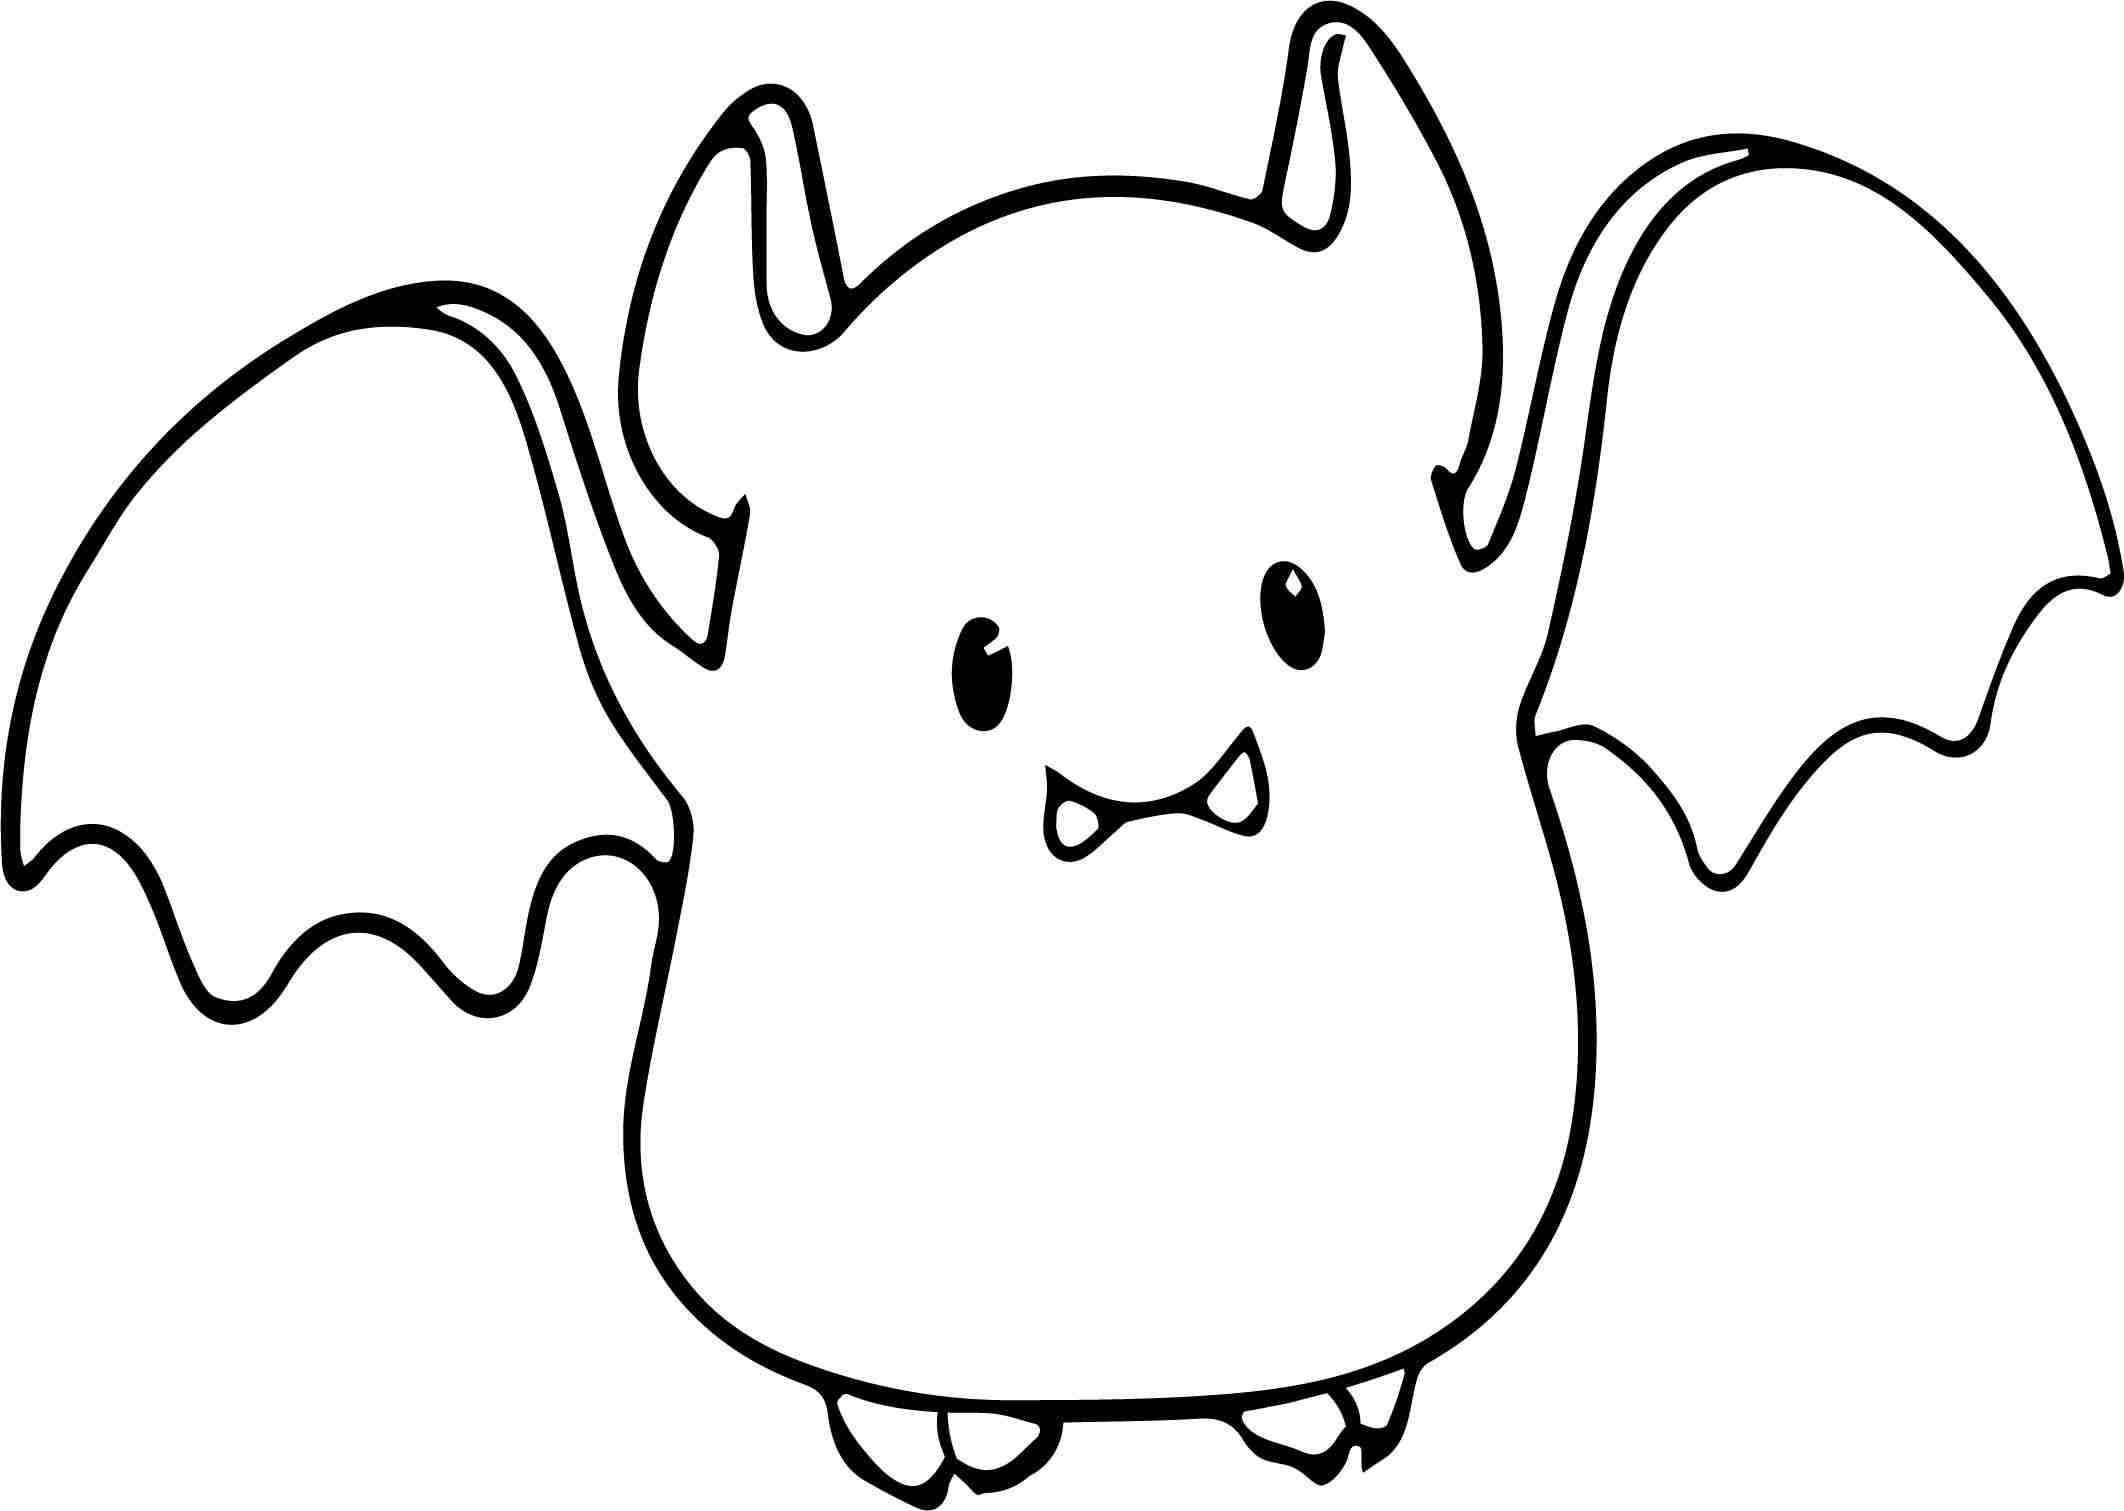 Vampire Bat Coloring Pages At Getcolorings